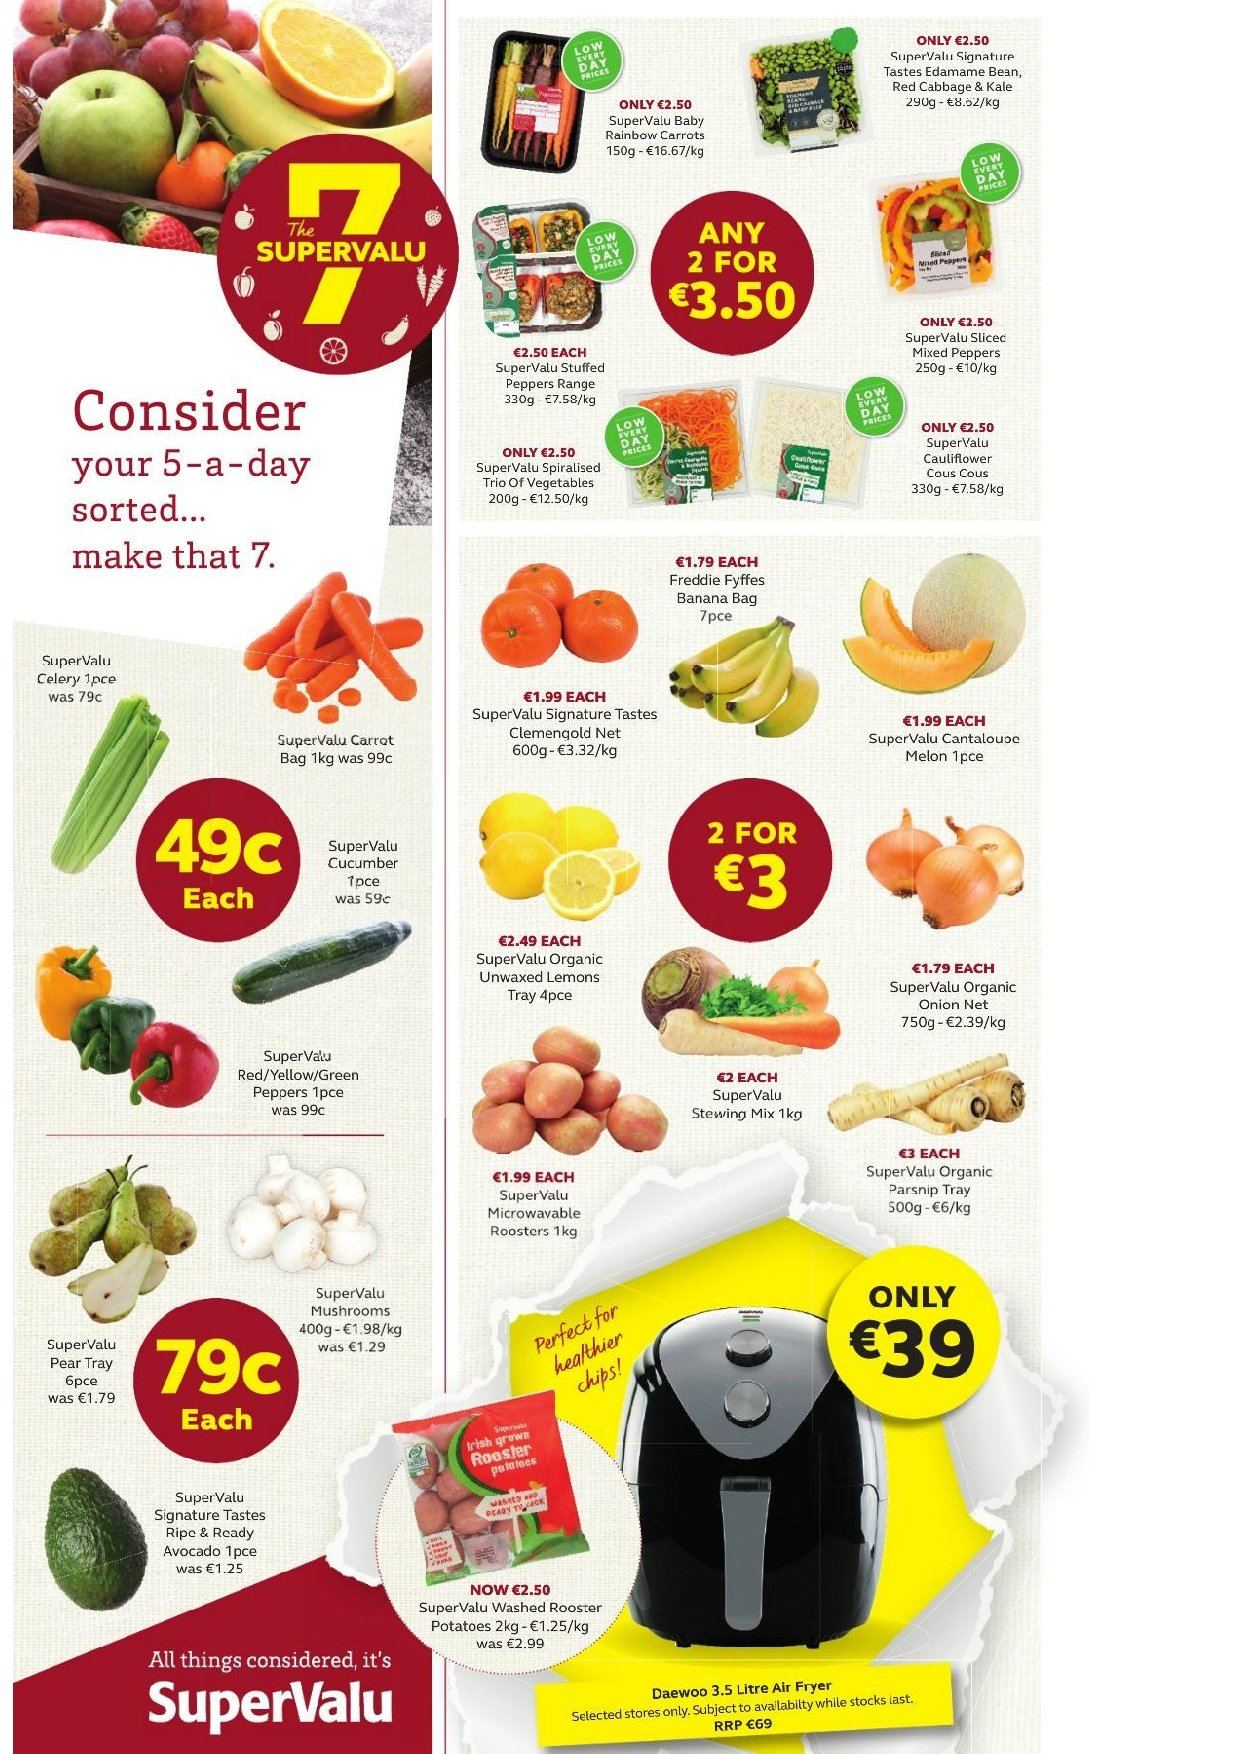 SuperValu offer  - 31.1.2019 - 13.2.2019 - Sales products - mushroom, beans, cabbage, carrots, cauliflower, cucumbers, potatoes, vegetables, celery, Edamame, peppers, avocado, pears, lemons, Daewoo. Page 30.